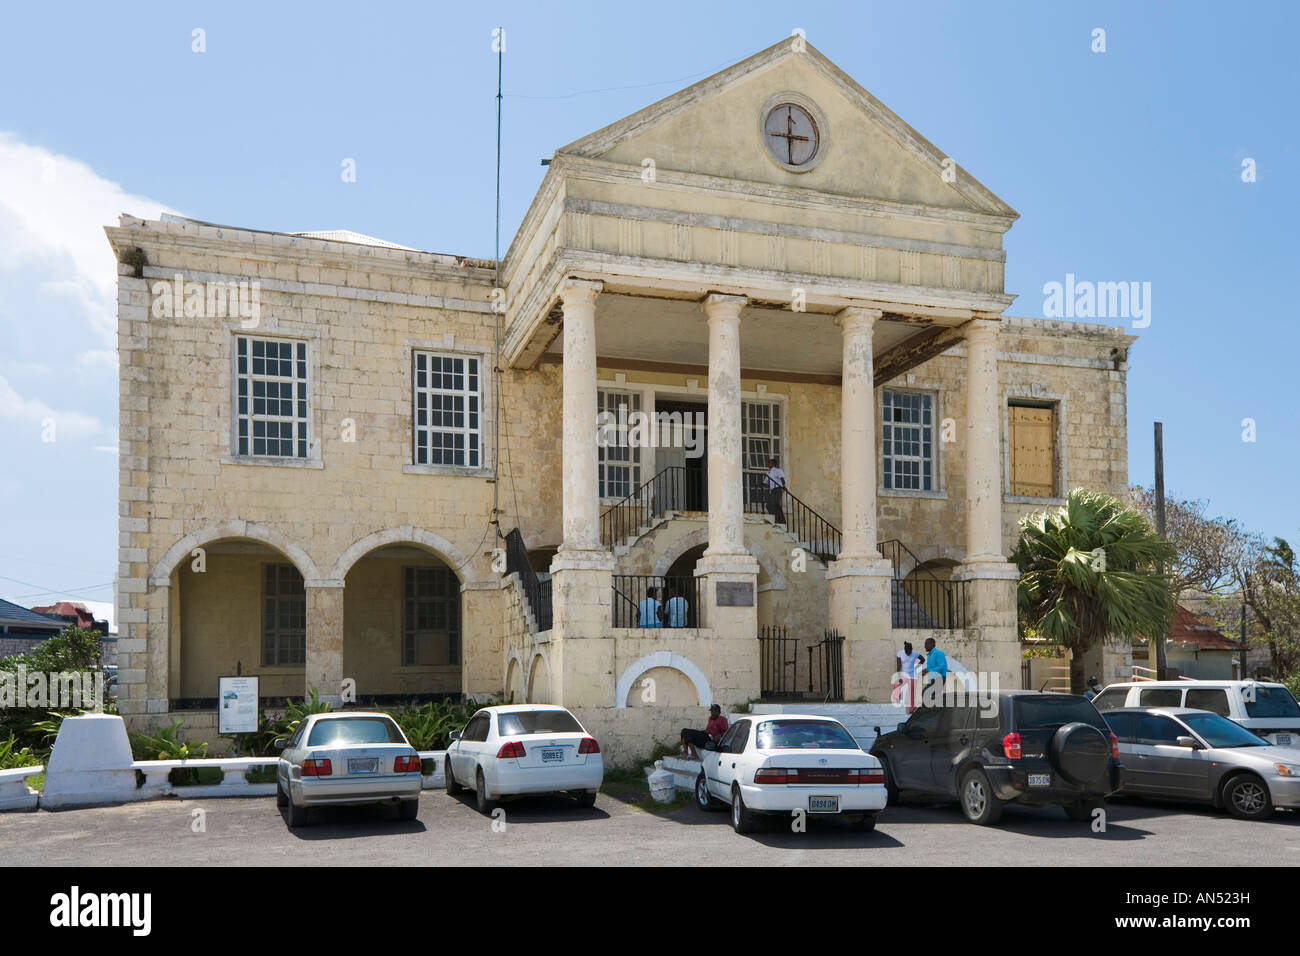 Old Courthouse in Falmouth, North Coast, Jamaica, Caribbean, West Indies - Stock Image